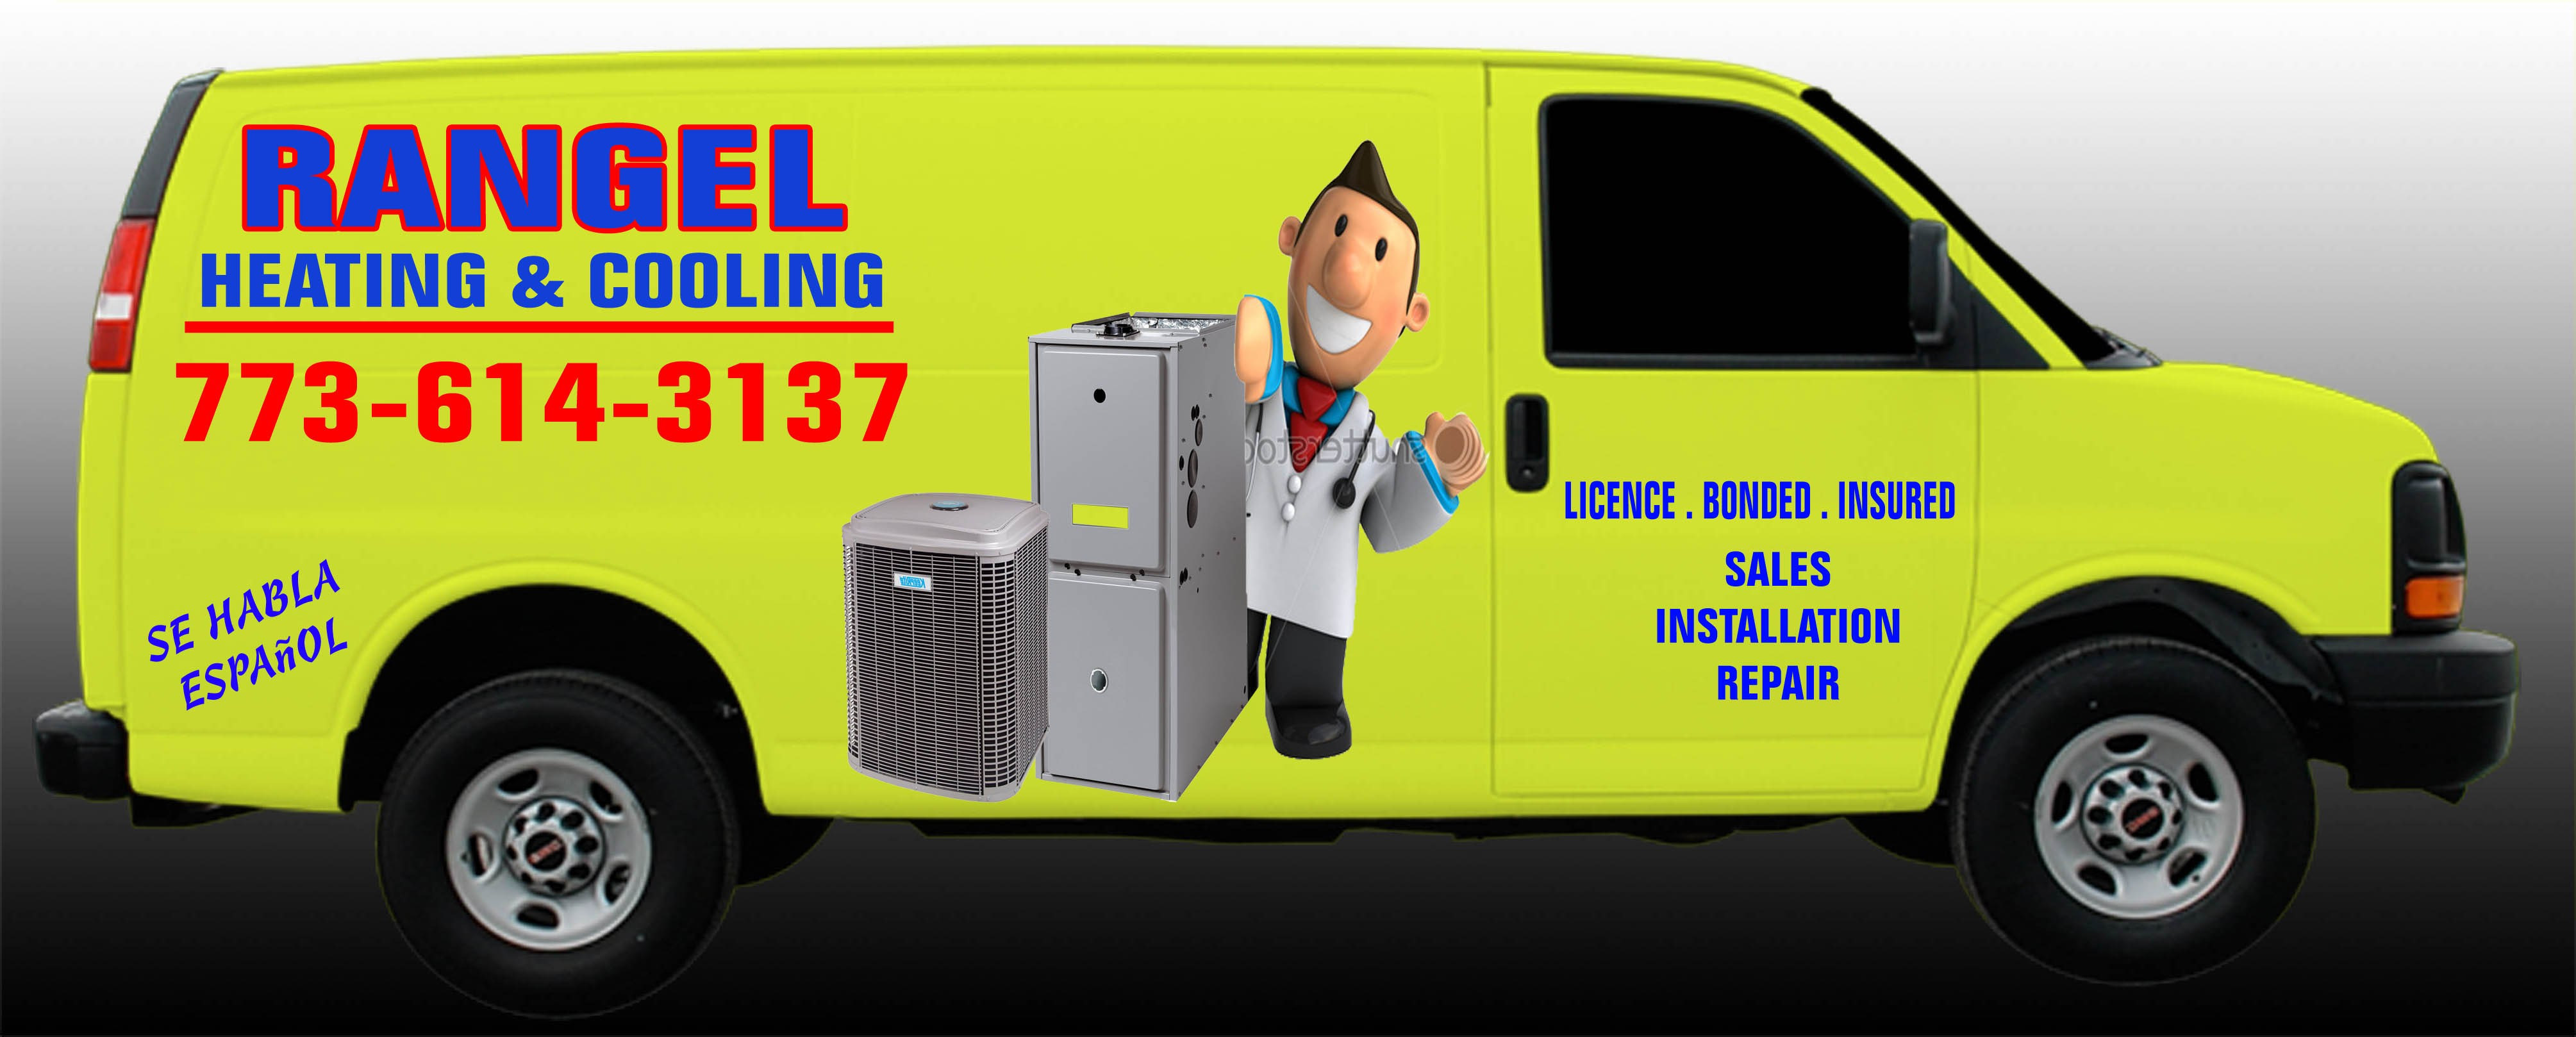 Rangel Heating & Cooling